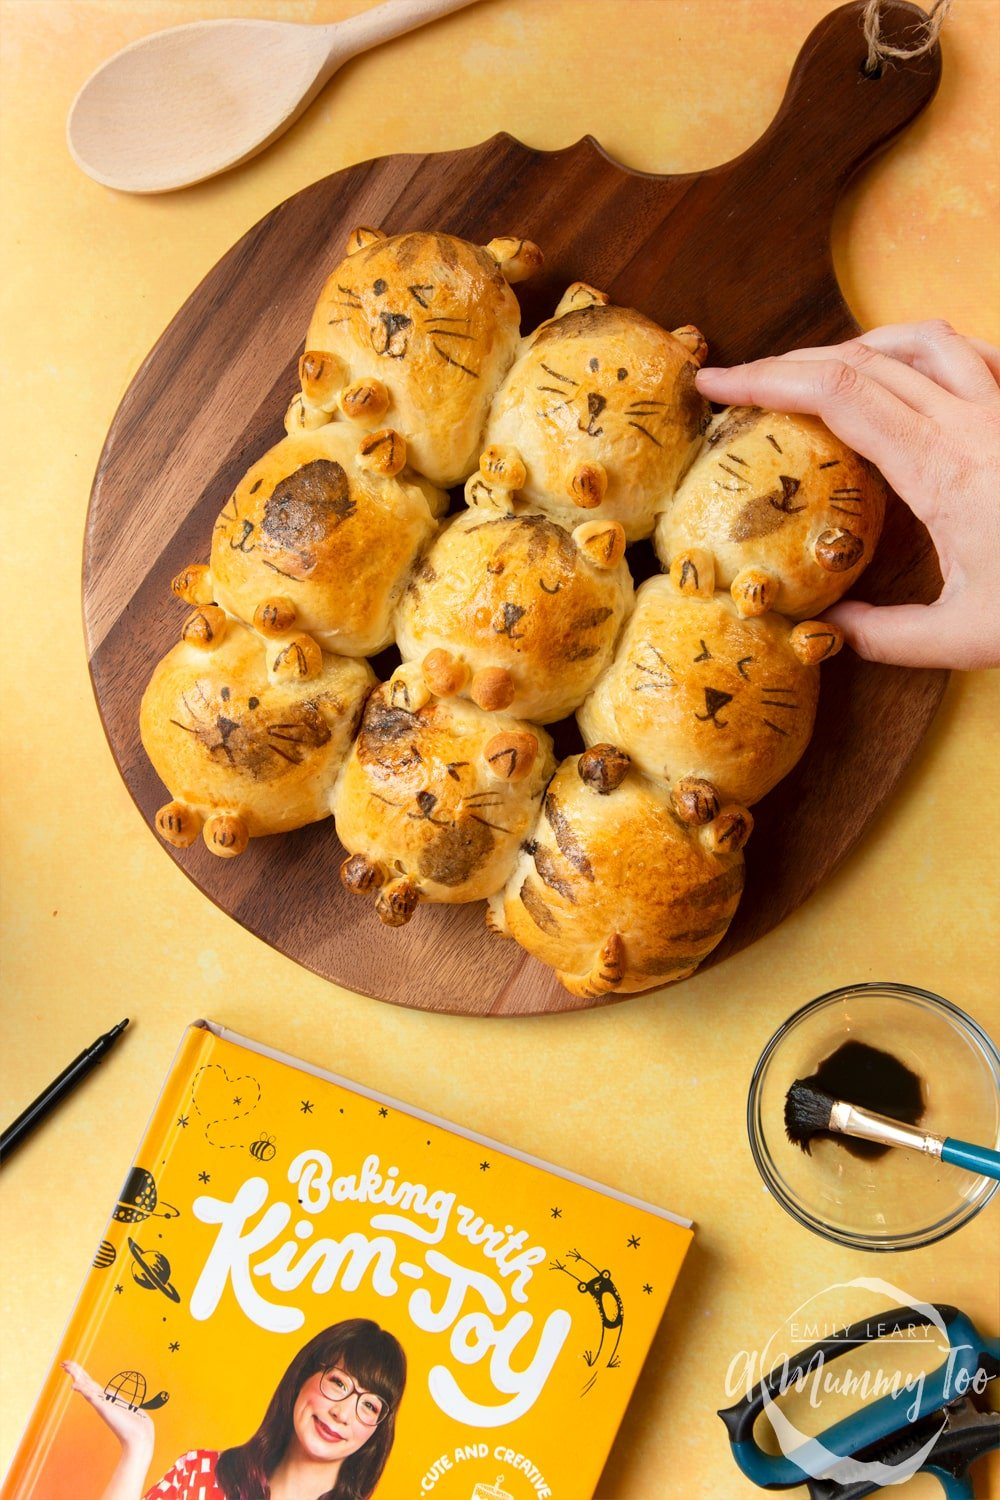 Kim-Joy's Tangzhong Cat Buns - nine bread rolls on a board, shaped and decorated to resemble cats, a hand reaches for one bun.